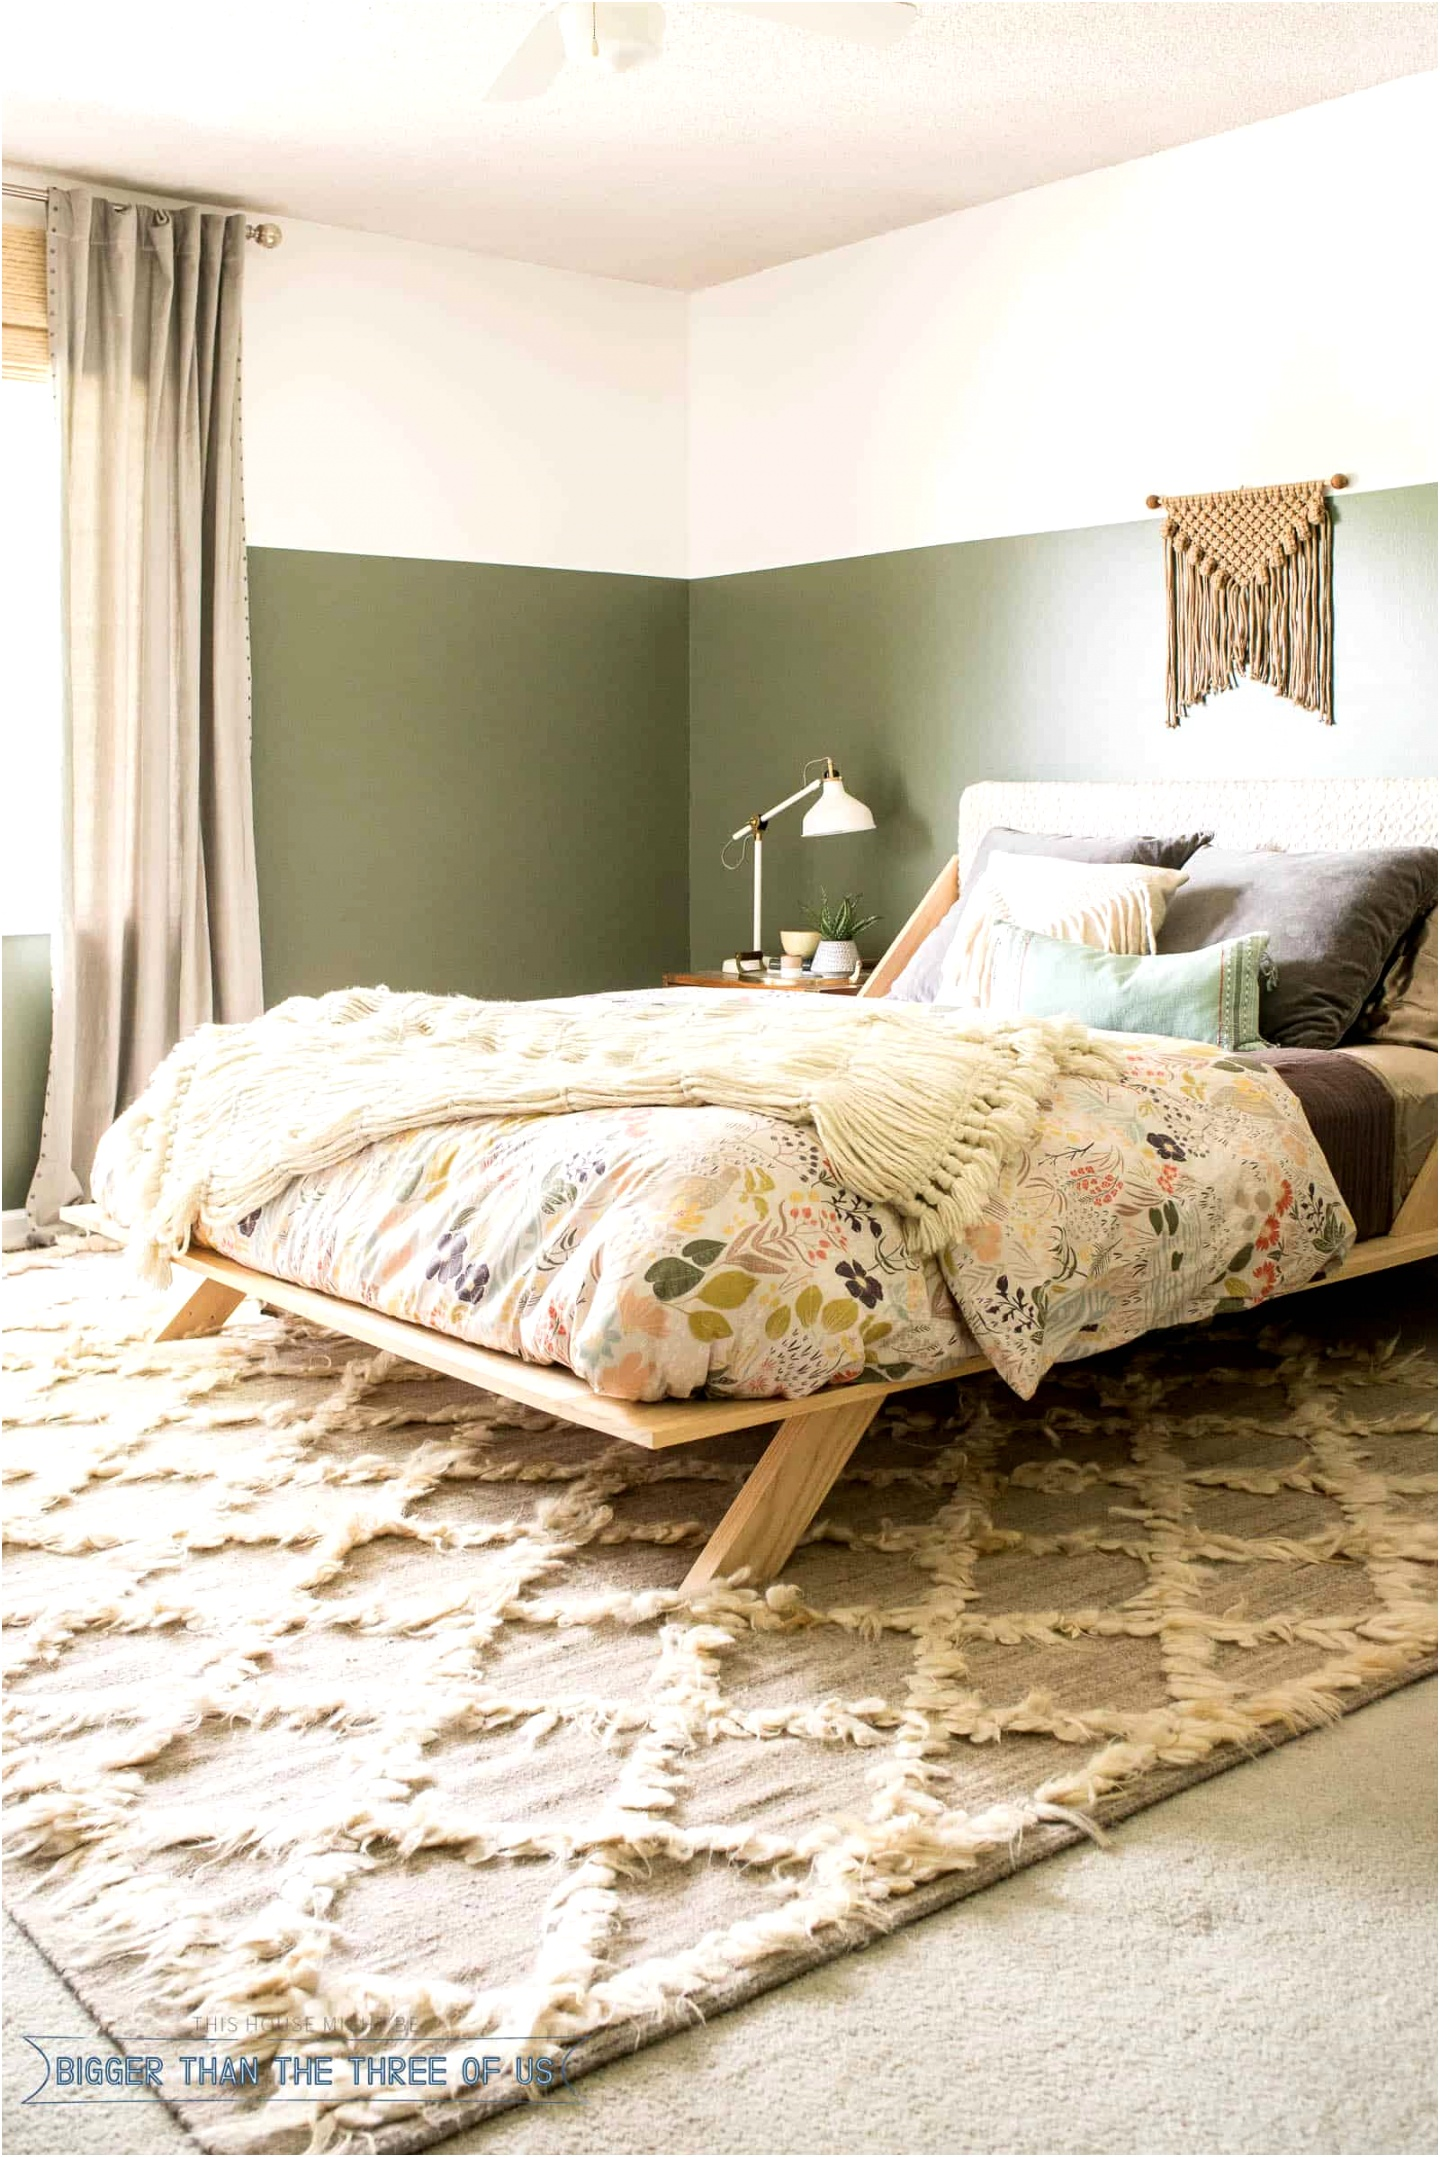 Guest Bedroom Decorating Ideas 3 of 3